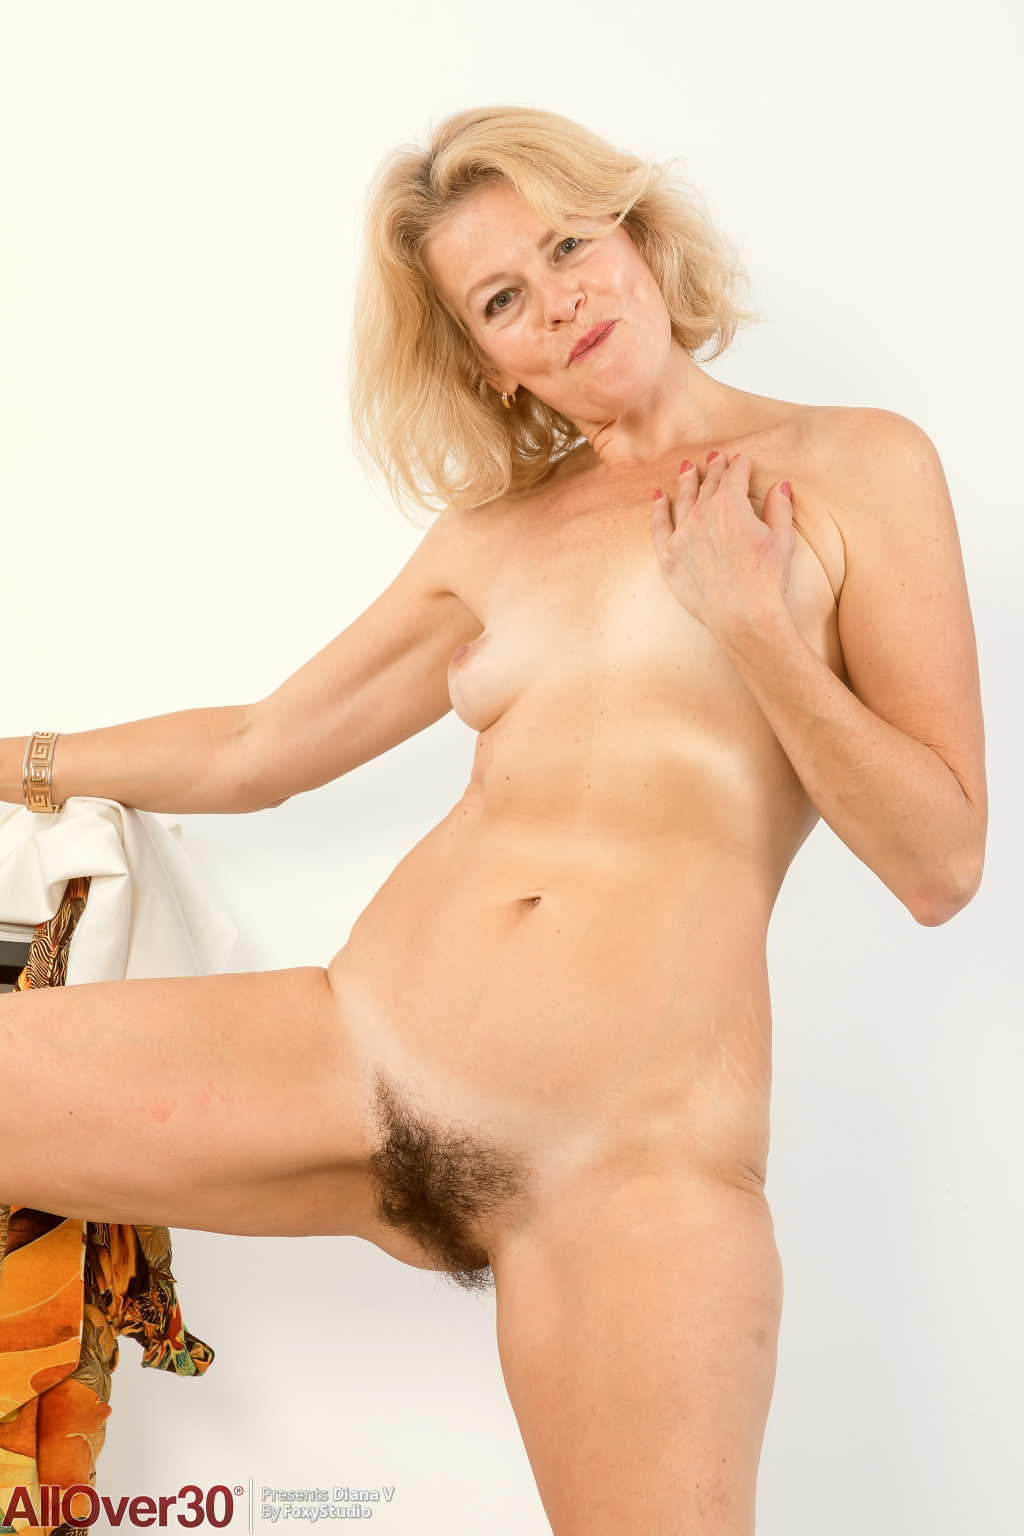 mature-hot-diana-v-14